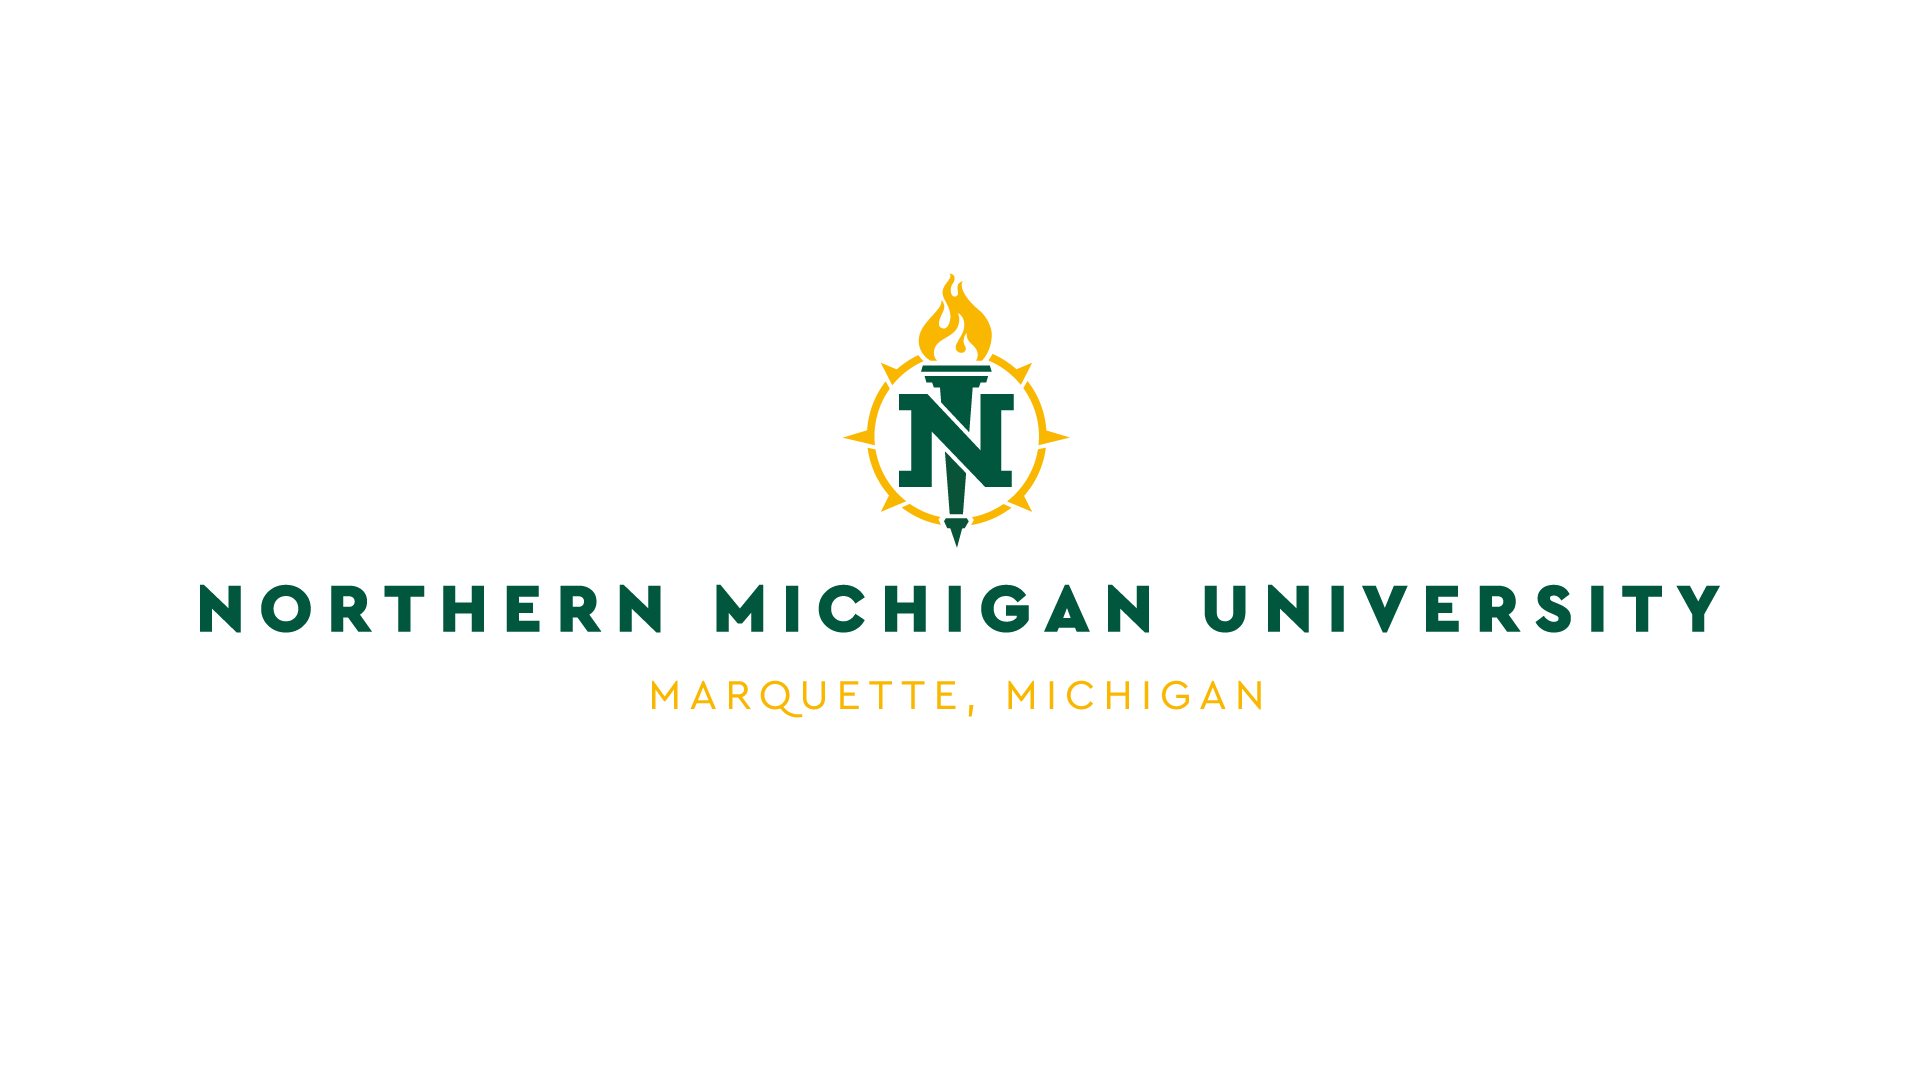 NMU Updated Logo